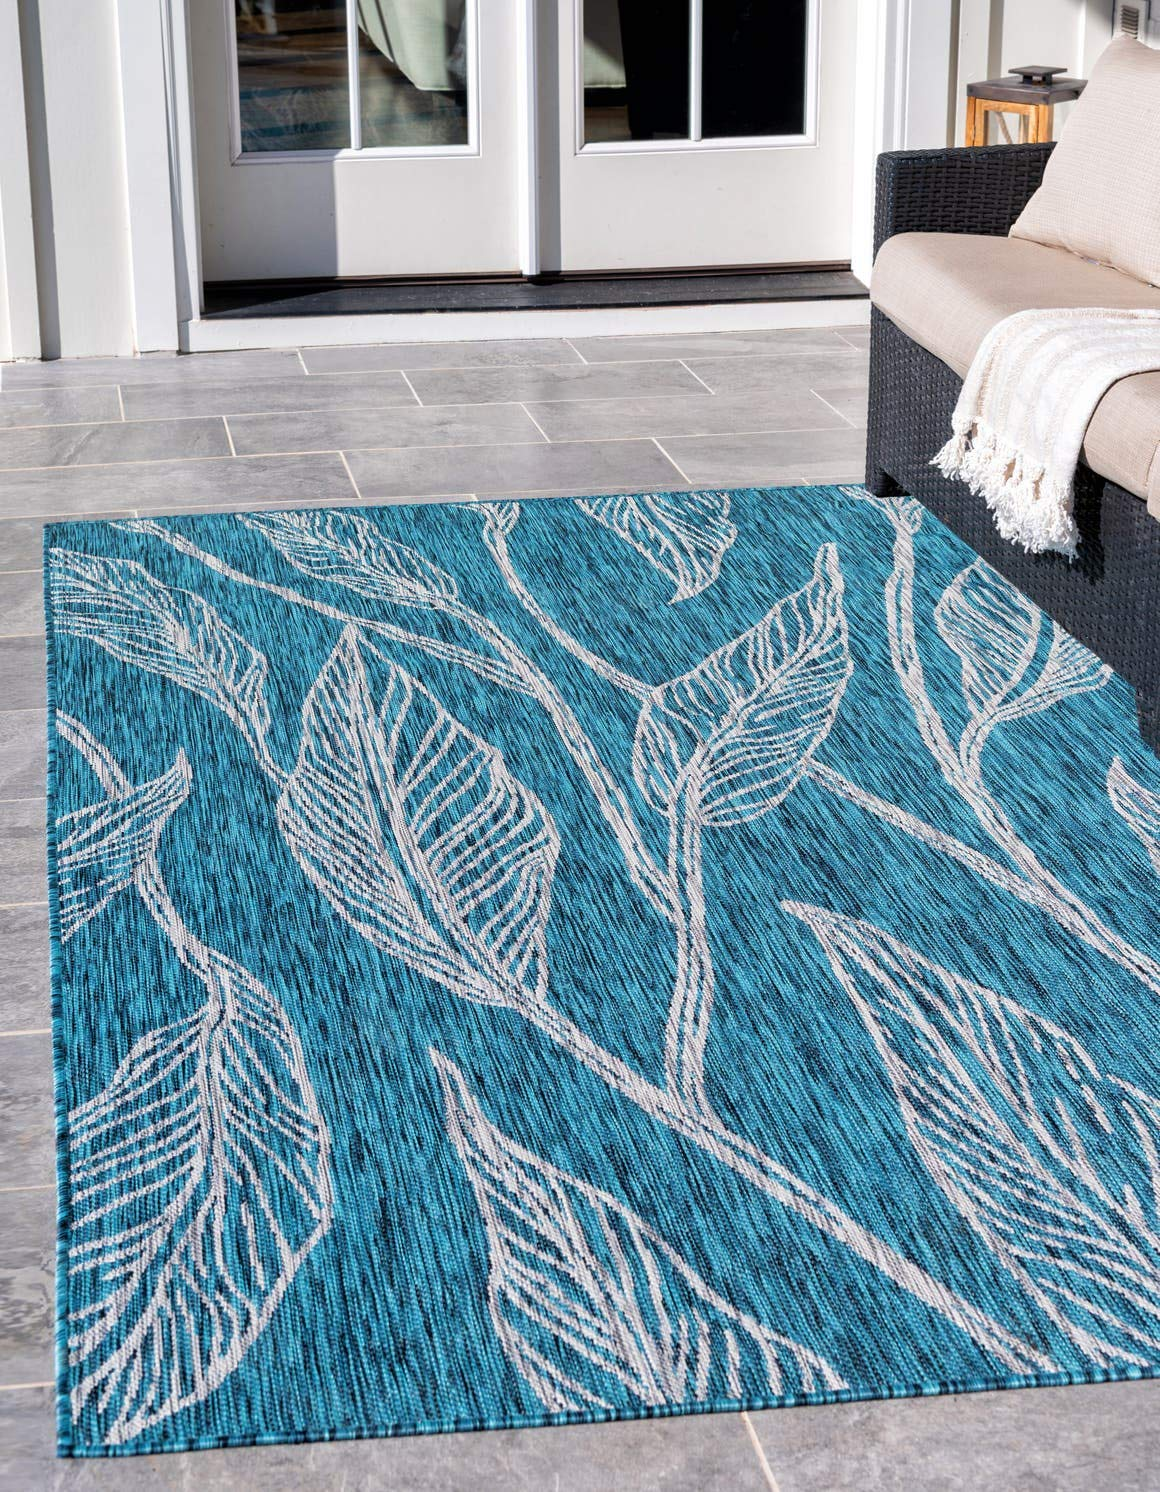 Unique Loom Outdoor Botanical Collection Casual Leafs Transitional Indoor and Outdoor Flatweave Teal Area Rug 6 0 x 9 0